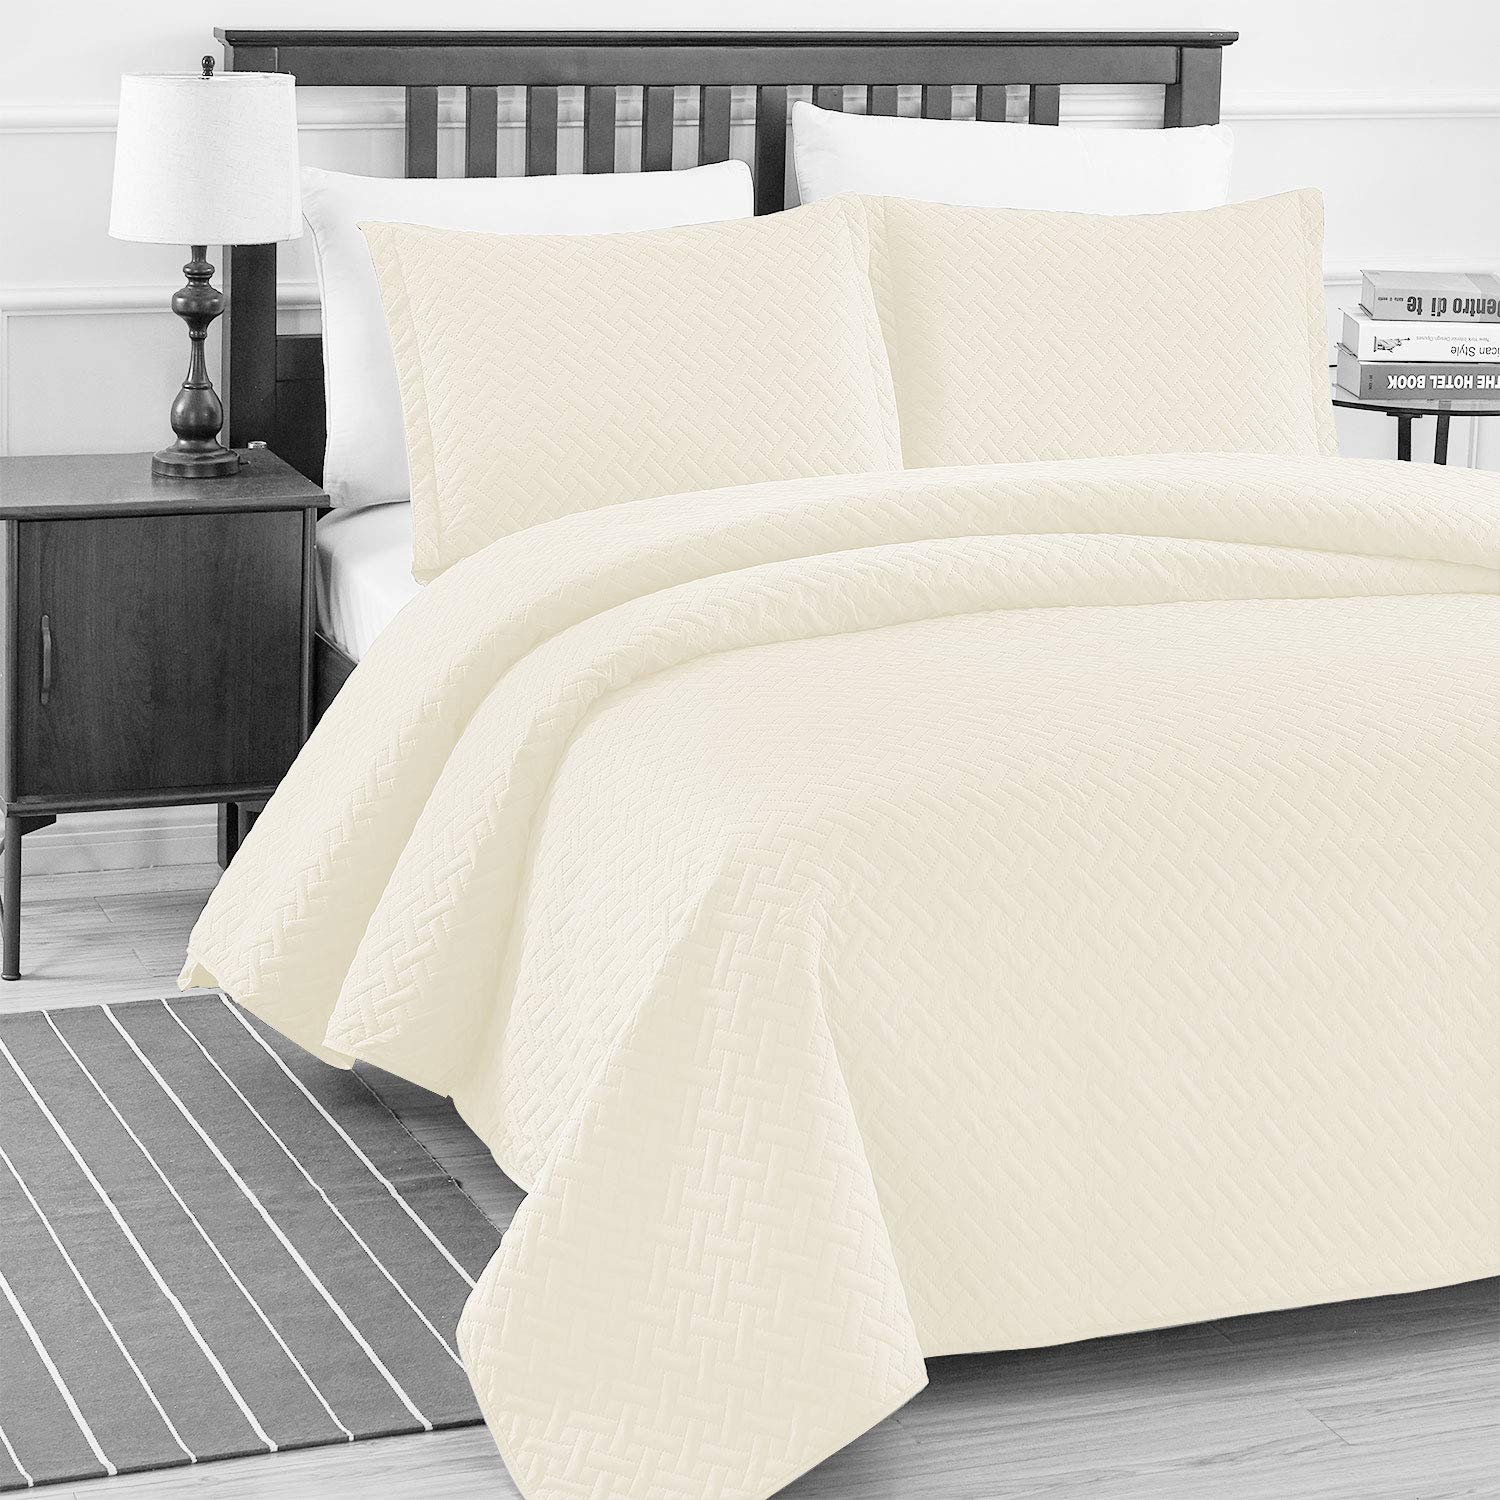 Basic Choice Elegant 3-piece Light weight Oversize Quilted Bedspread Coverlet Set - Ivory, Full/Queen